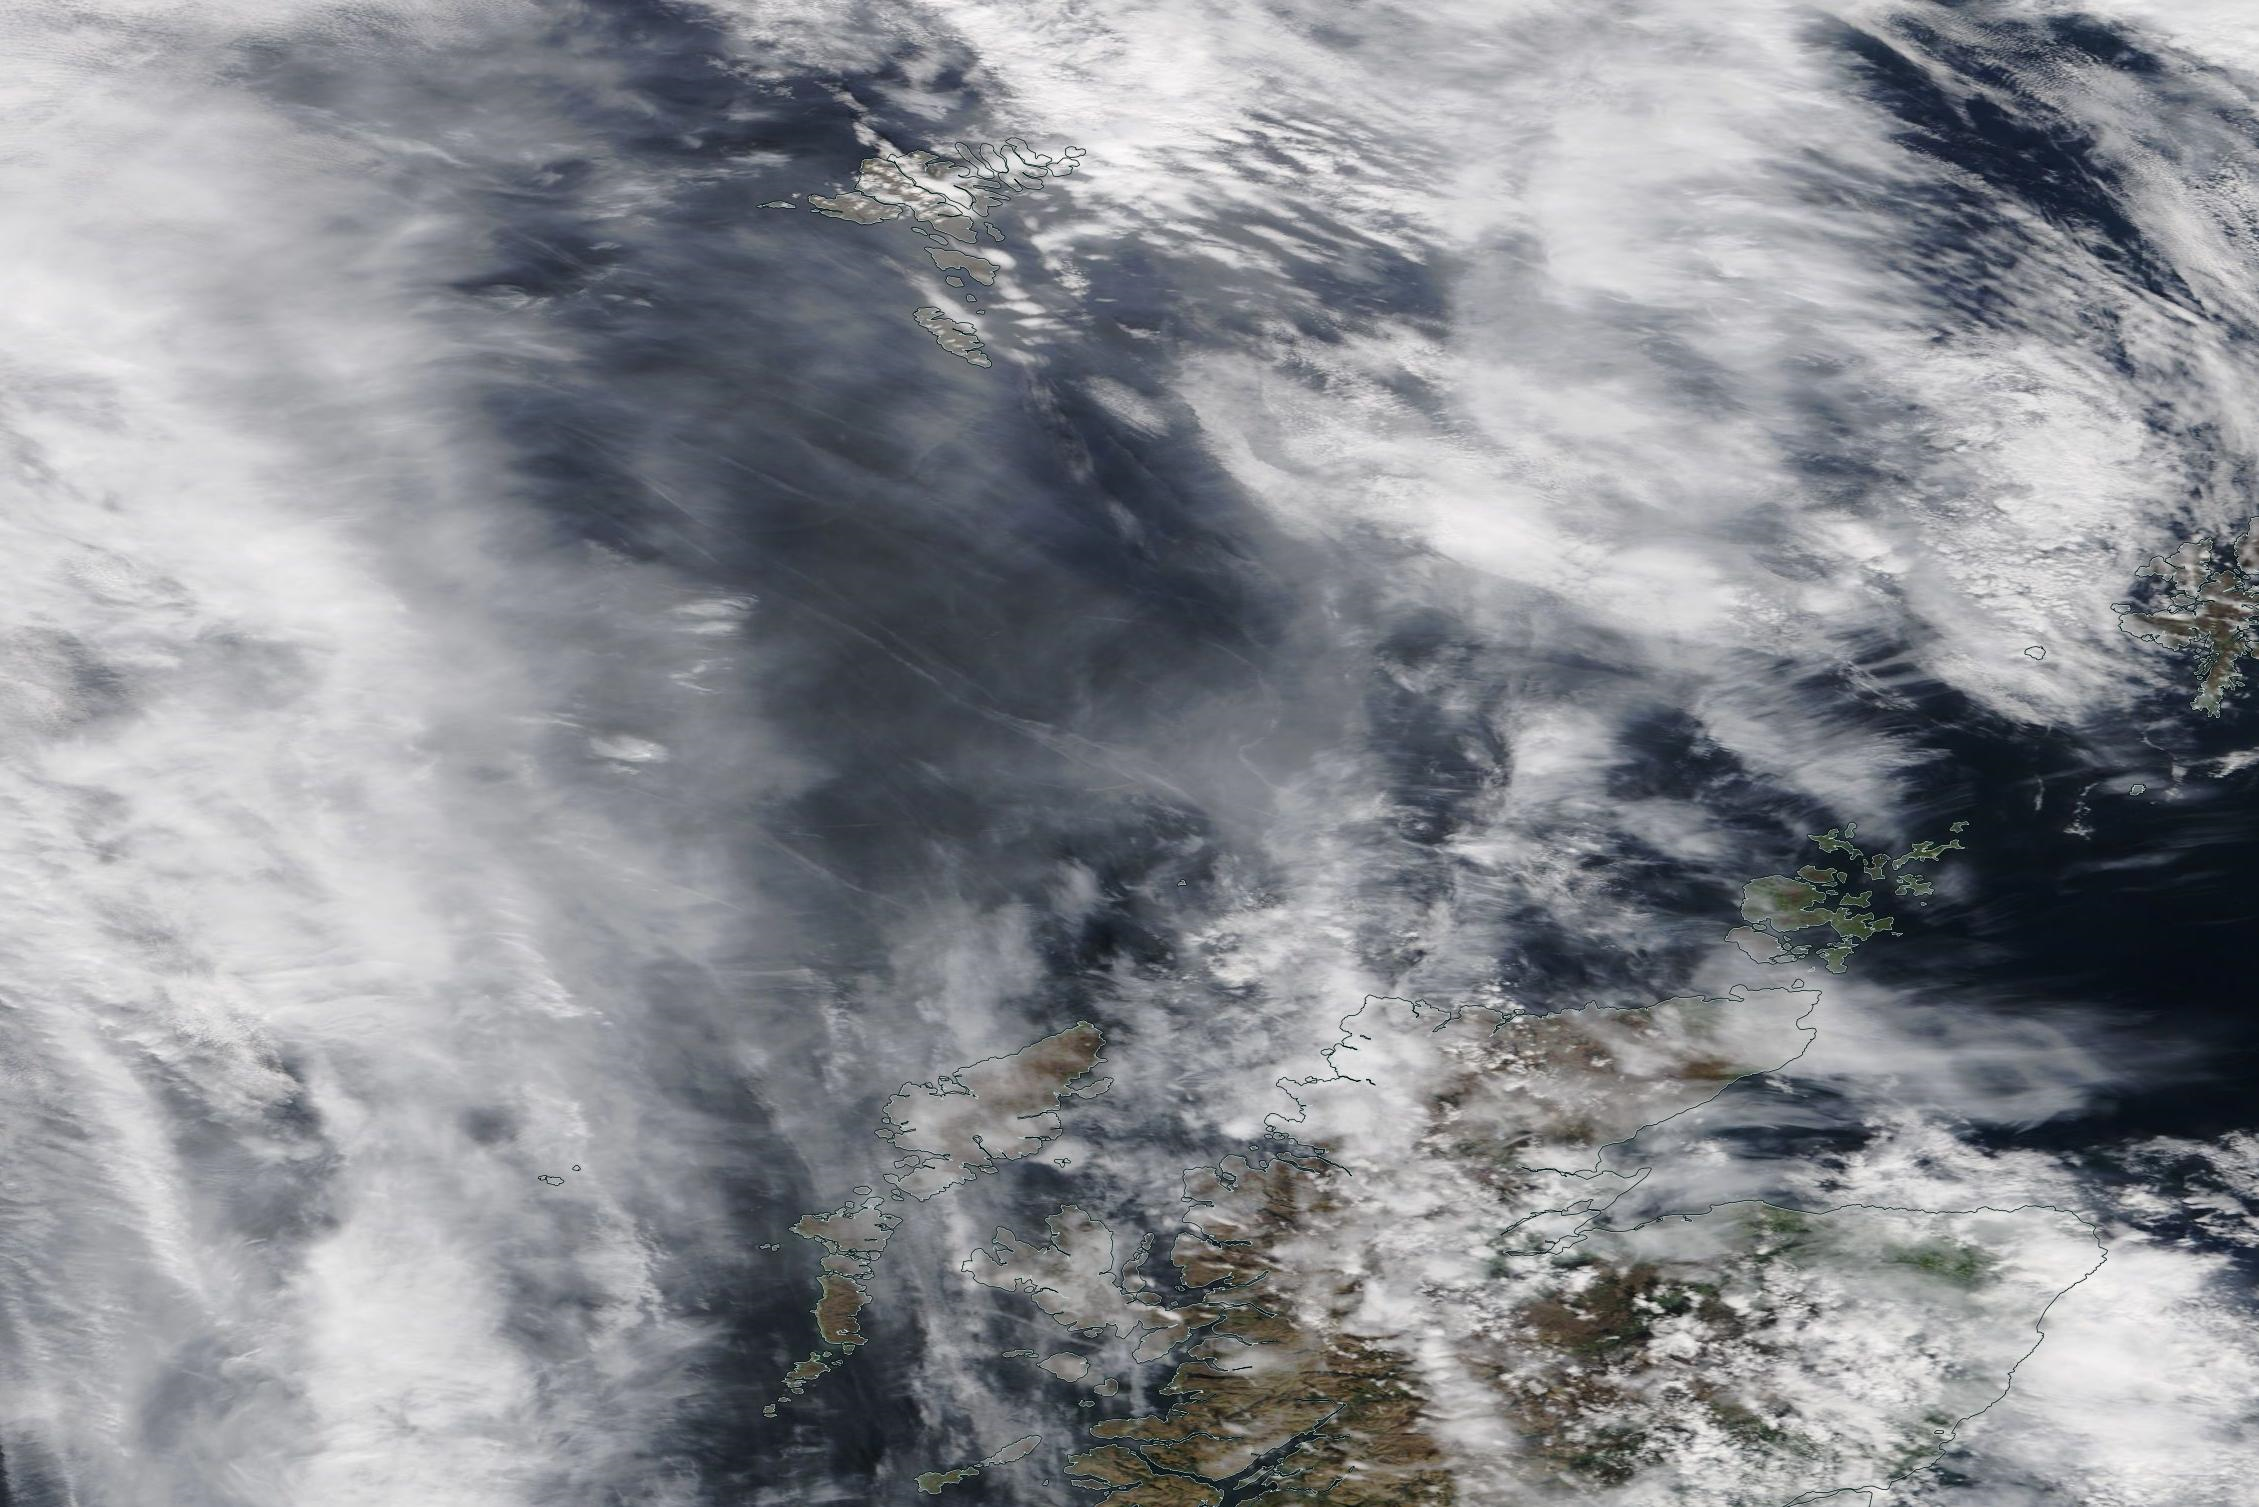 northern Scotland, Faroes, Outer Hebrides chemtrail geoengineering May 13 2019 ... https://go.nasa.gov/2E52ckI